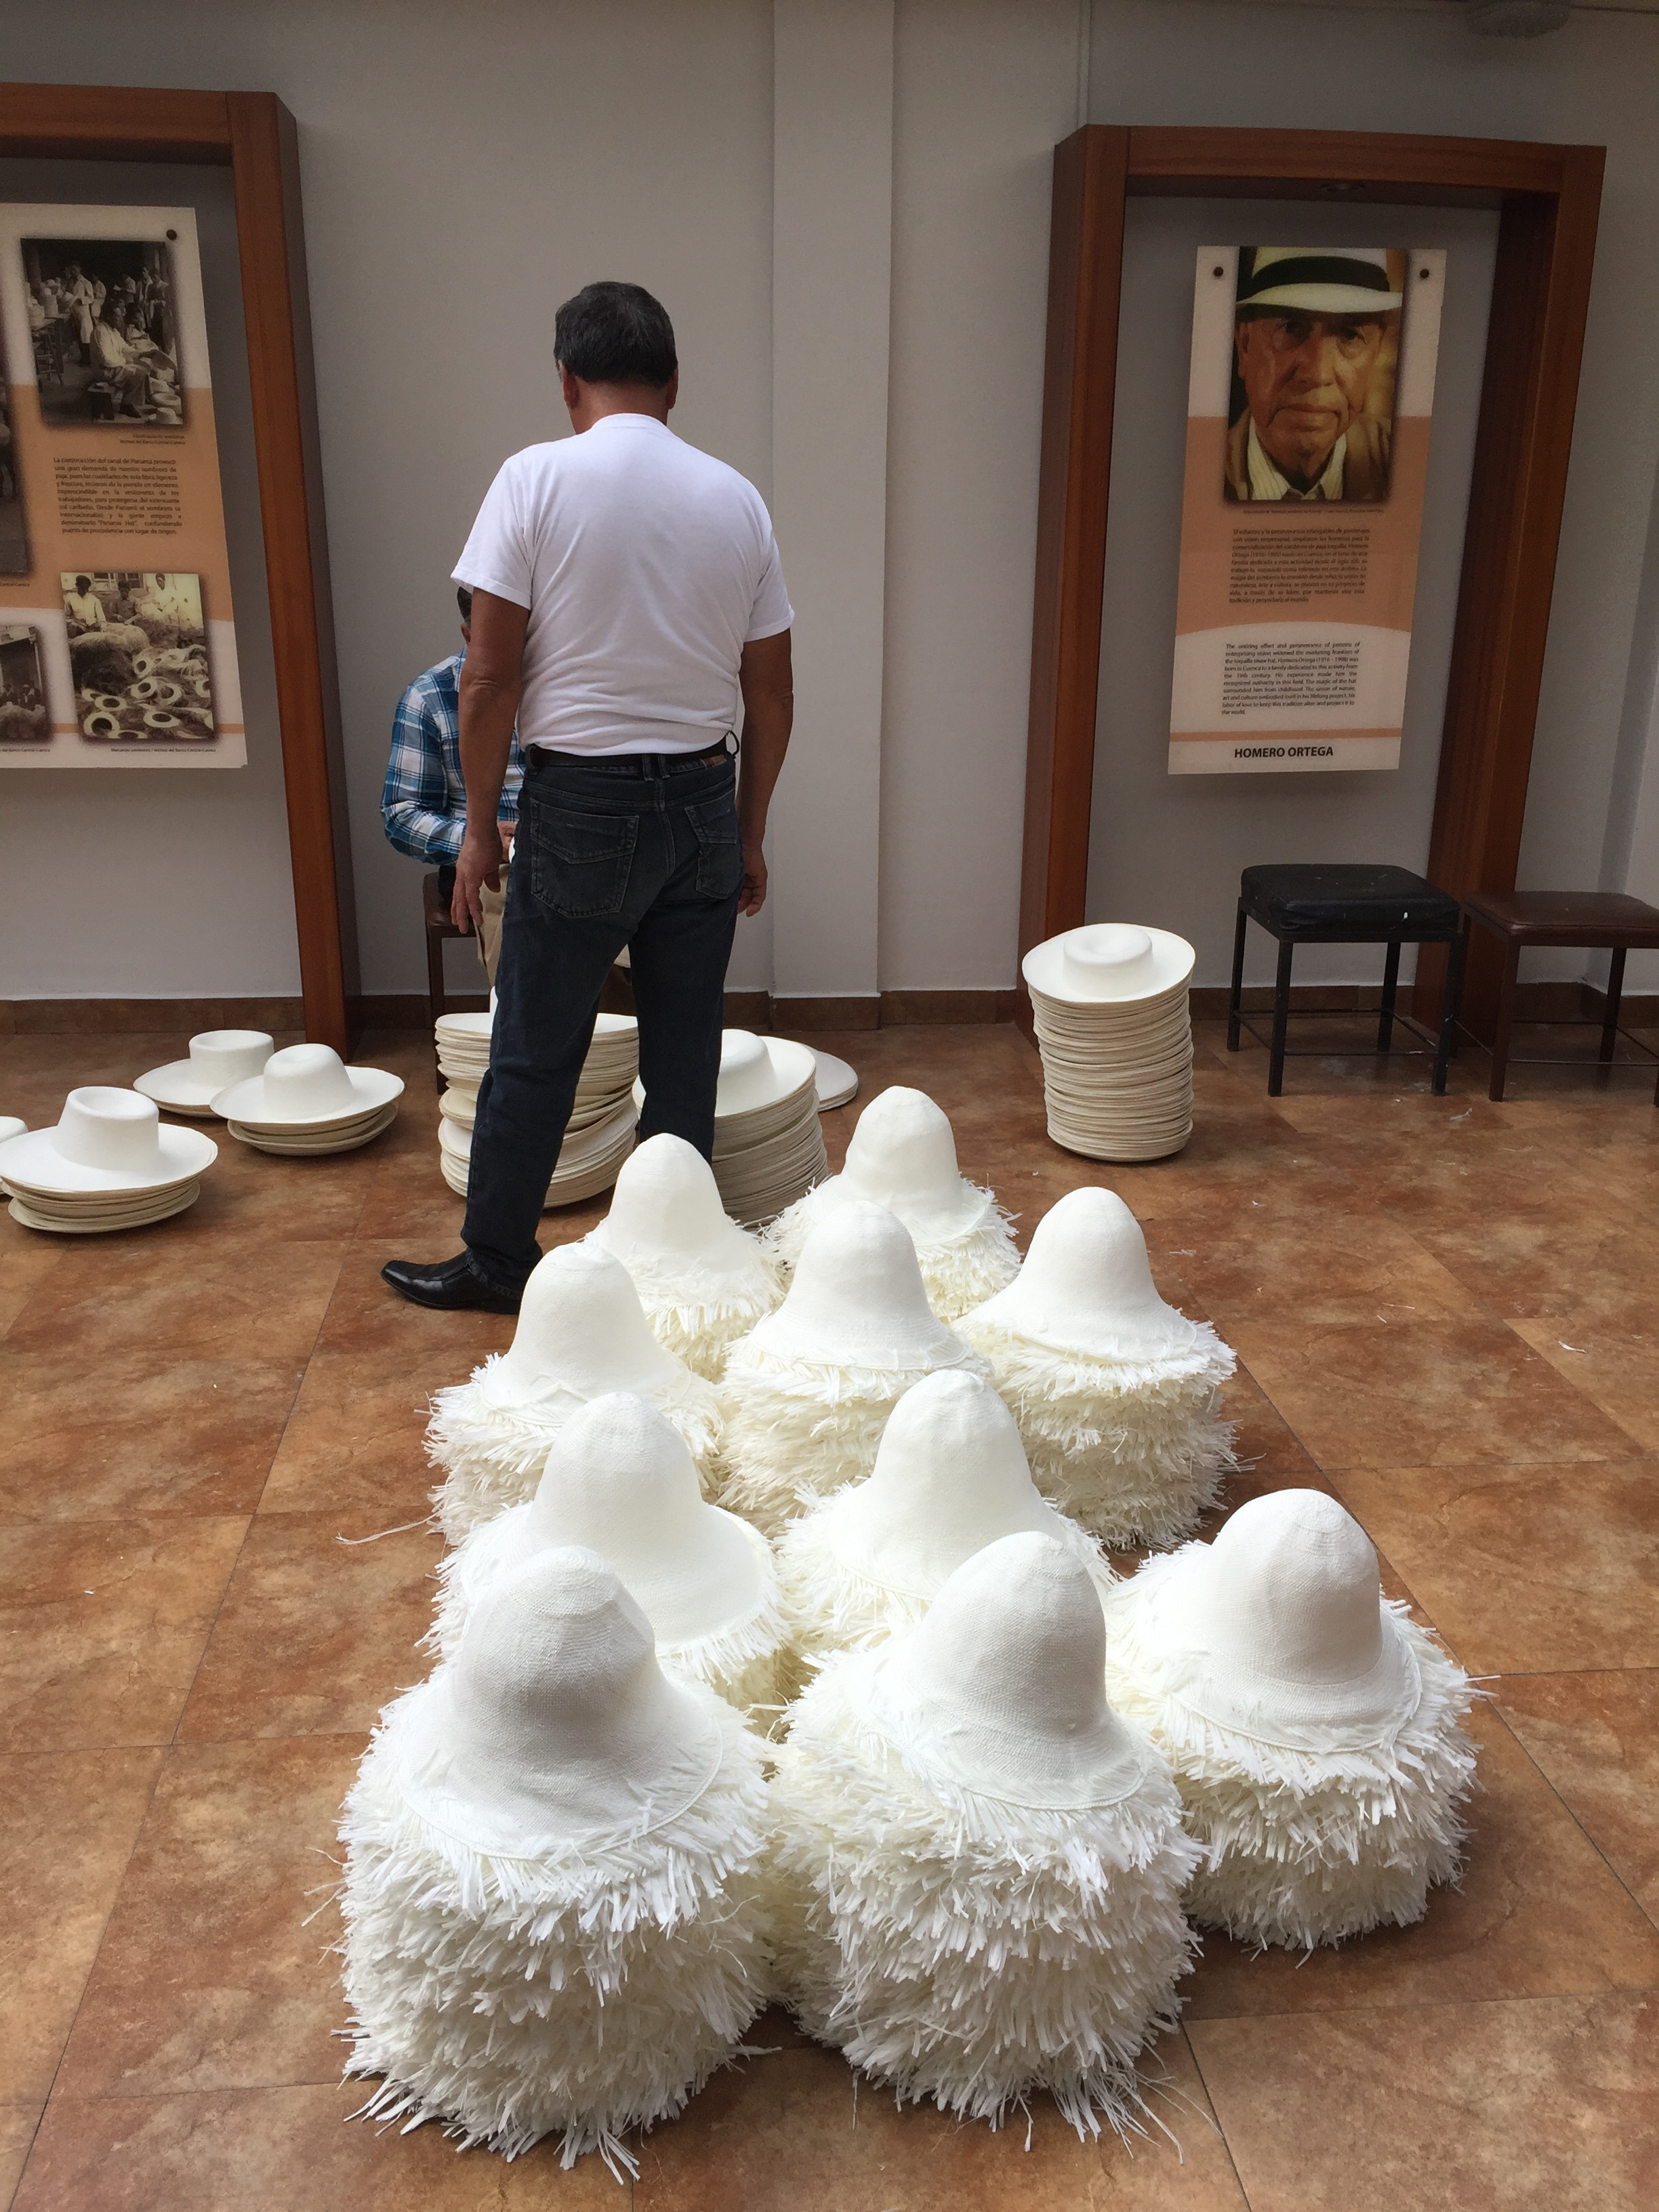 I visited the Homero Ortego hat factory in Cuenca, where world-famous Panama hats are made.